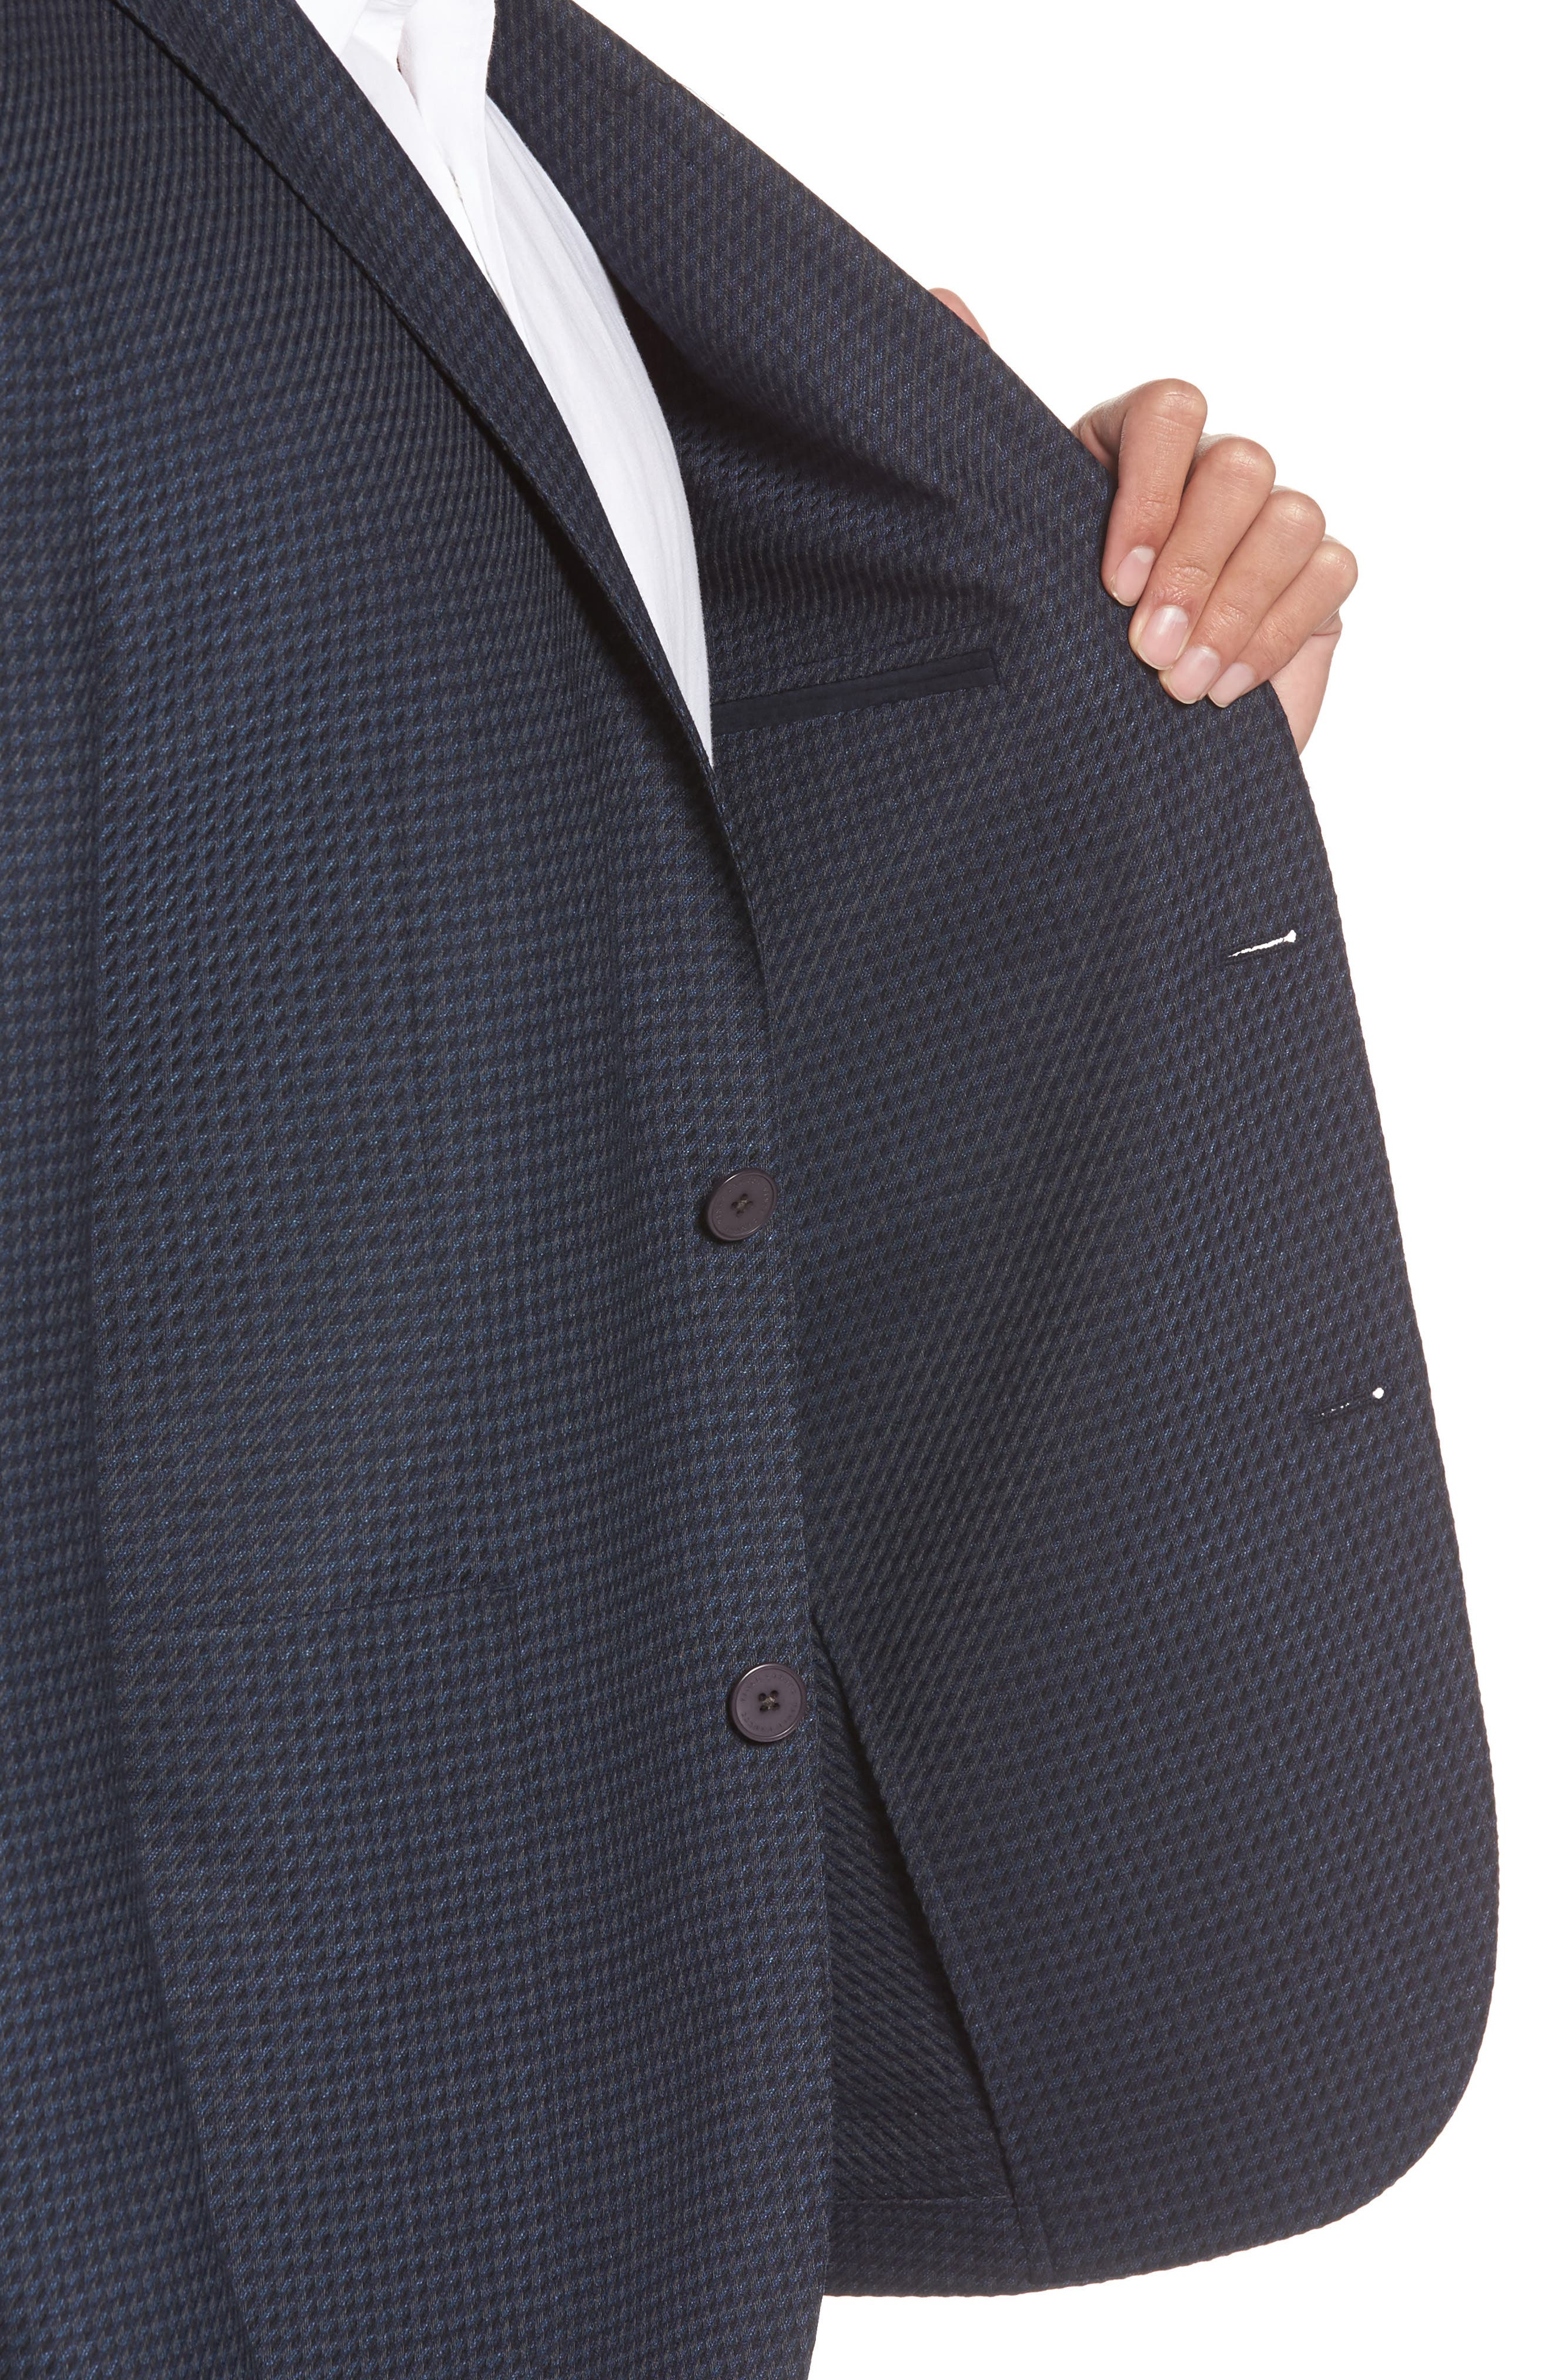 Digital Houndstooth Wool Blend Sport Coat,                             Alternate thumbnail 4, color,                             410